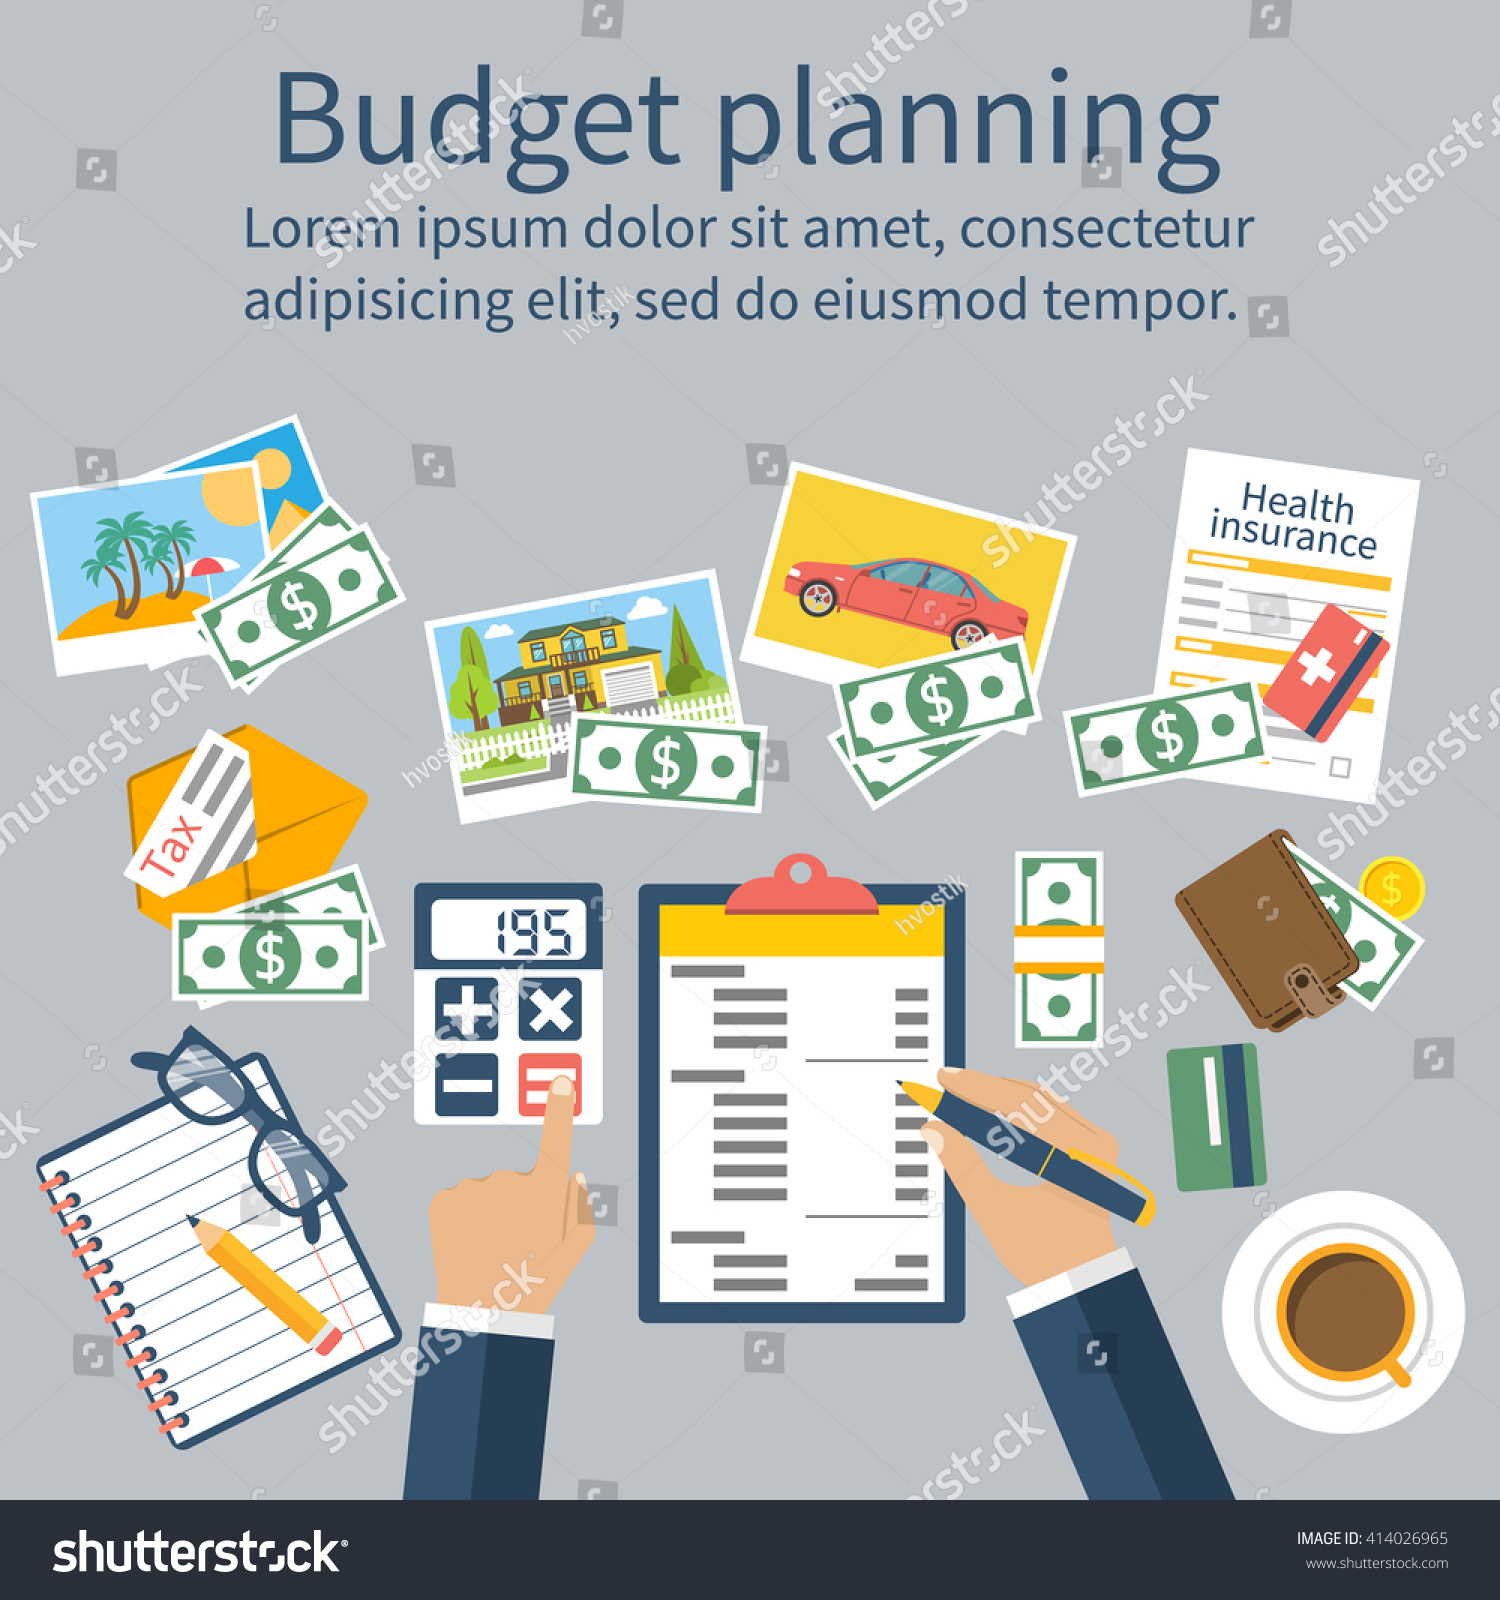 concept of financial budgeting Cost accounting budgeting analysis - learn accounting basics in simple and easy steps using this beginner's tutorial starting from basic concepts of the accounting overview, accounting process, accounting basic concepts, accounting conventions, accounts classification, systems, financial journal.